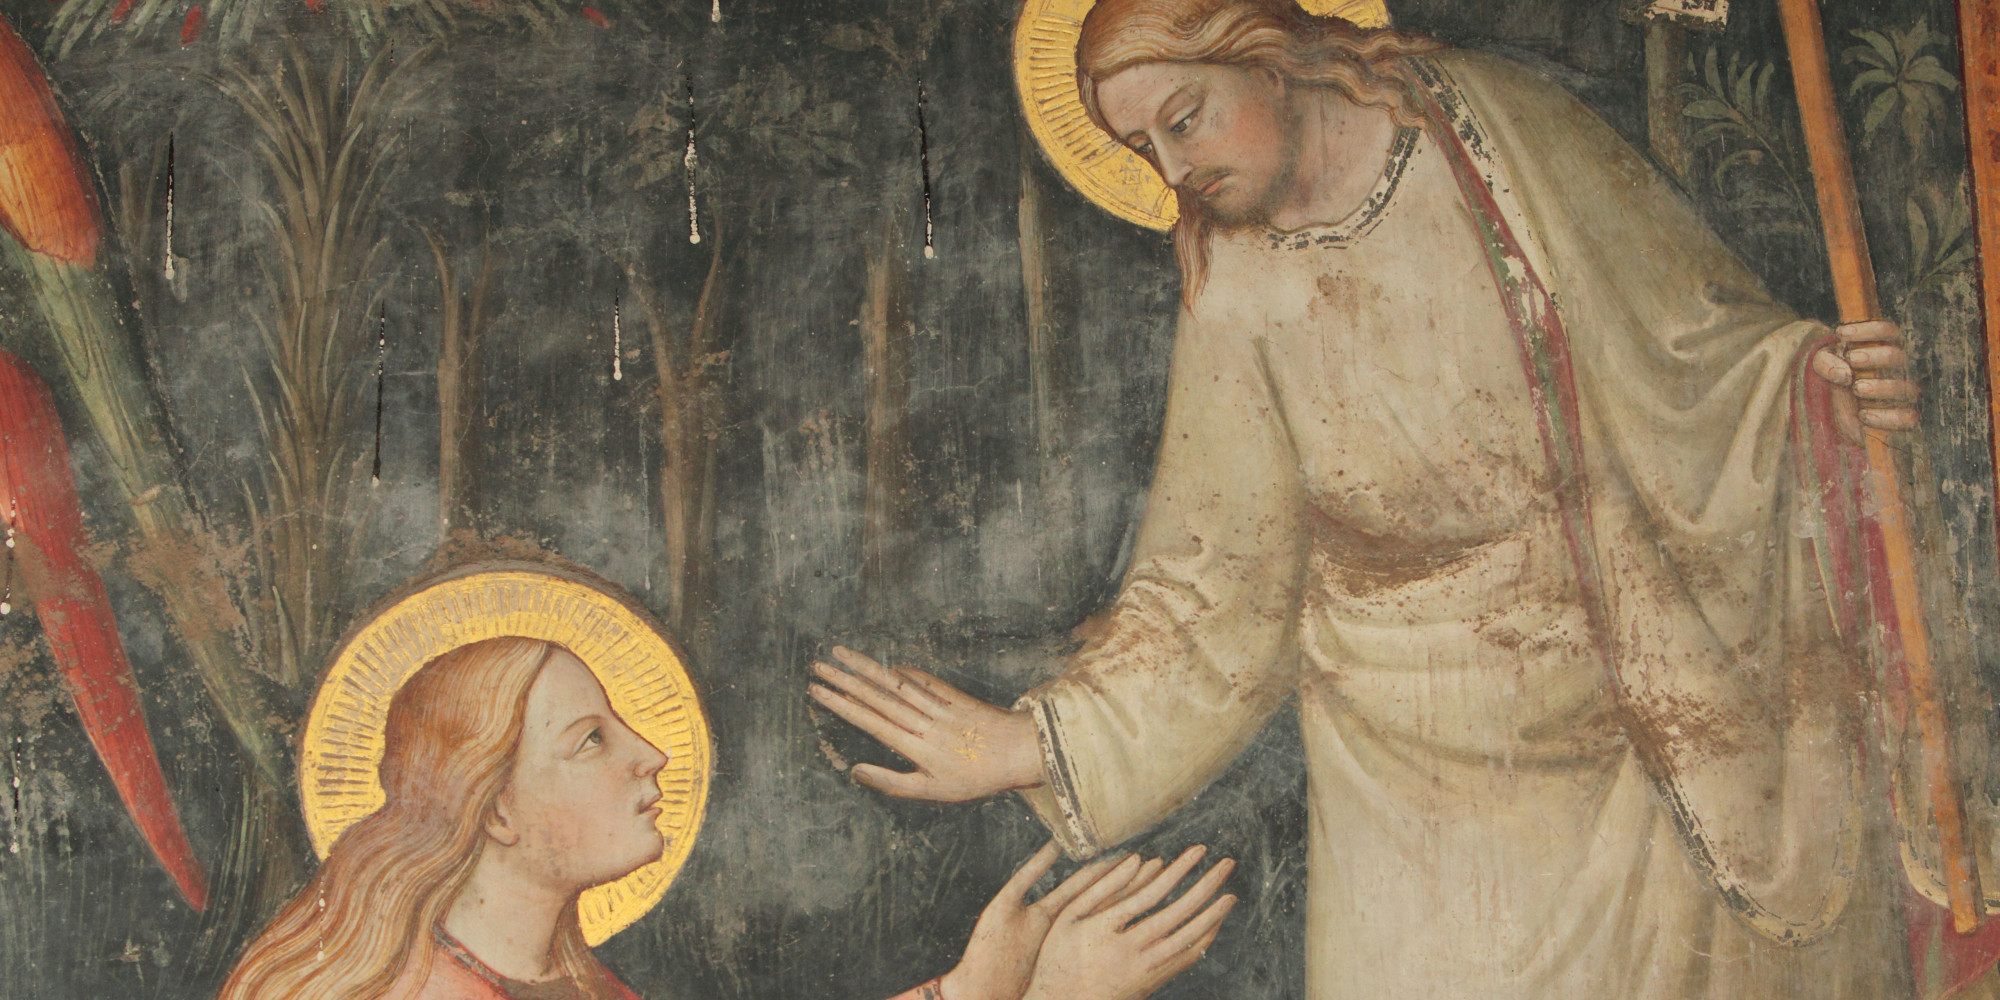 "jesus and mary magdalene ""no one has ever asked me how it feels,"" says jesus christ to mary magdalene, his voice soft and rapt, in response to her similarly tremulous question about oneness with godmidway through ."